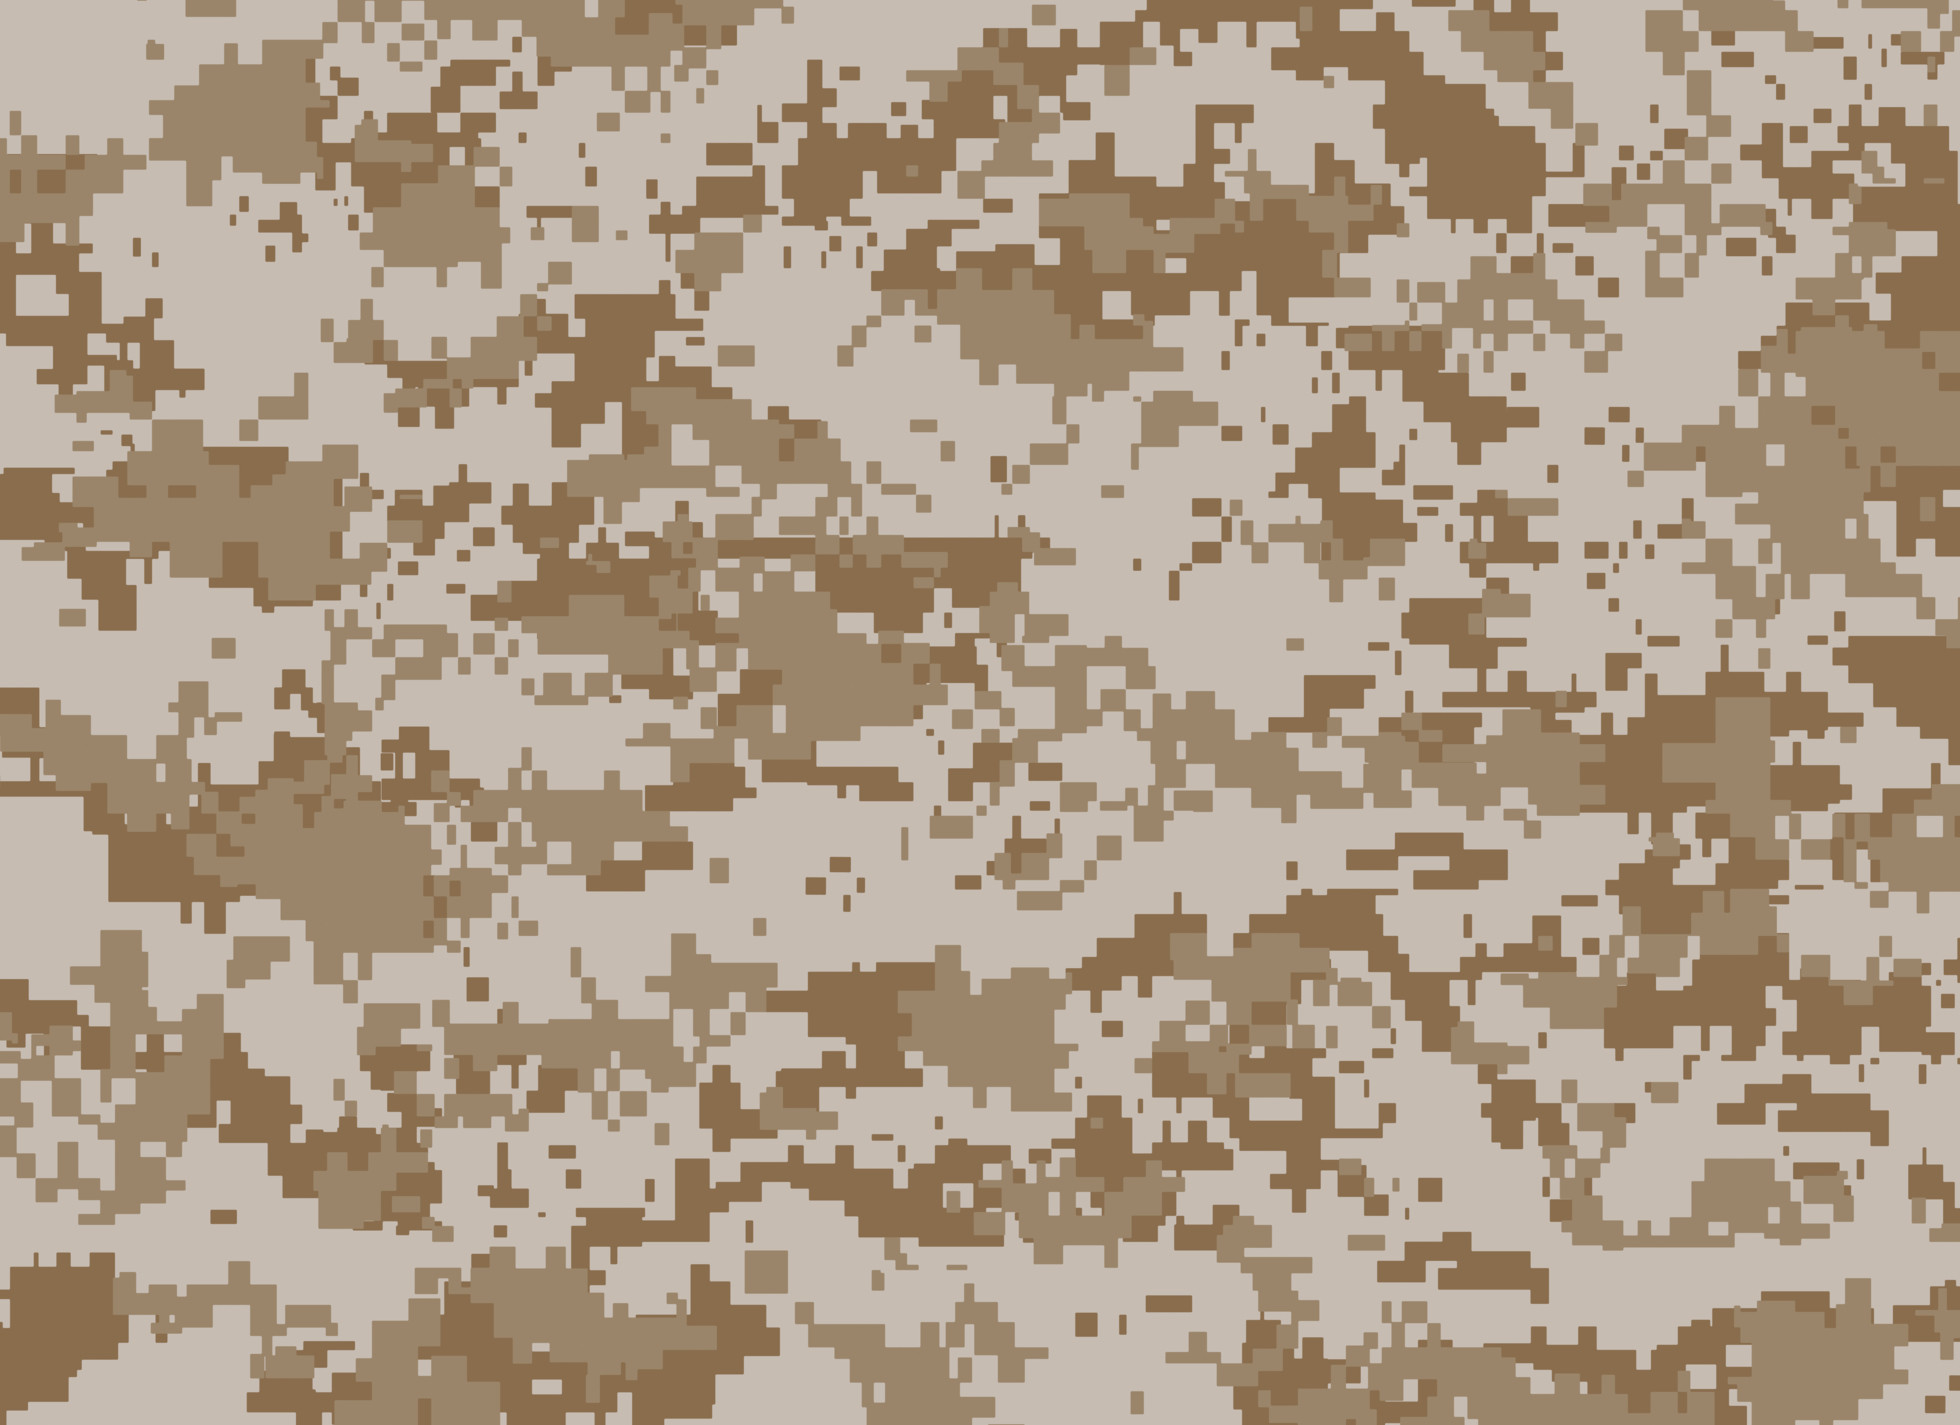 1960x1425 Usmc Camo Wallpaper Digital camo w